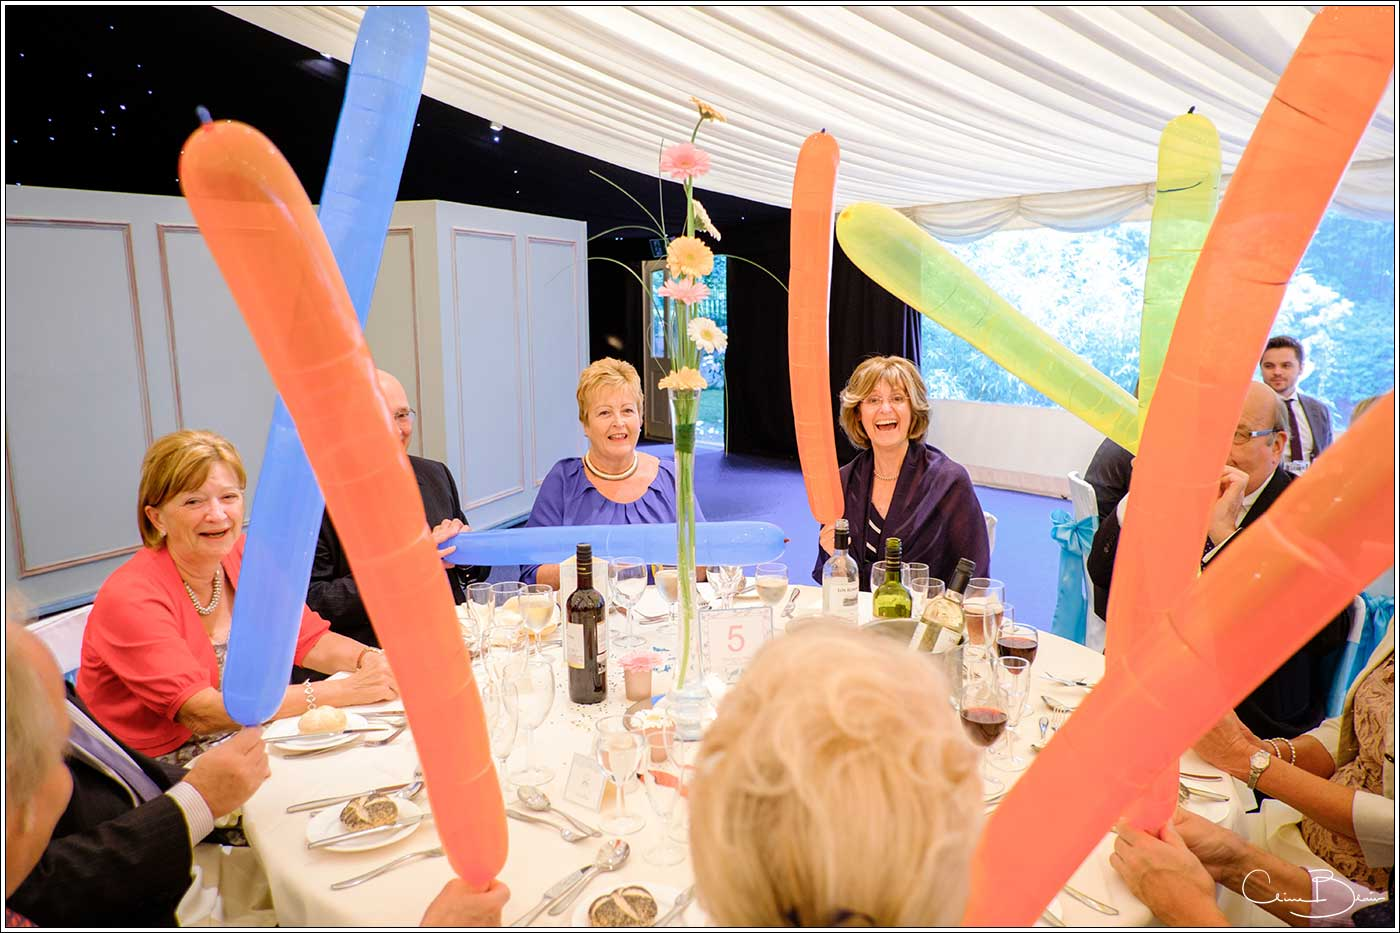 Coombe Abbey wedding photography showing guests playing with balloons